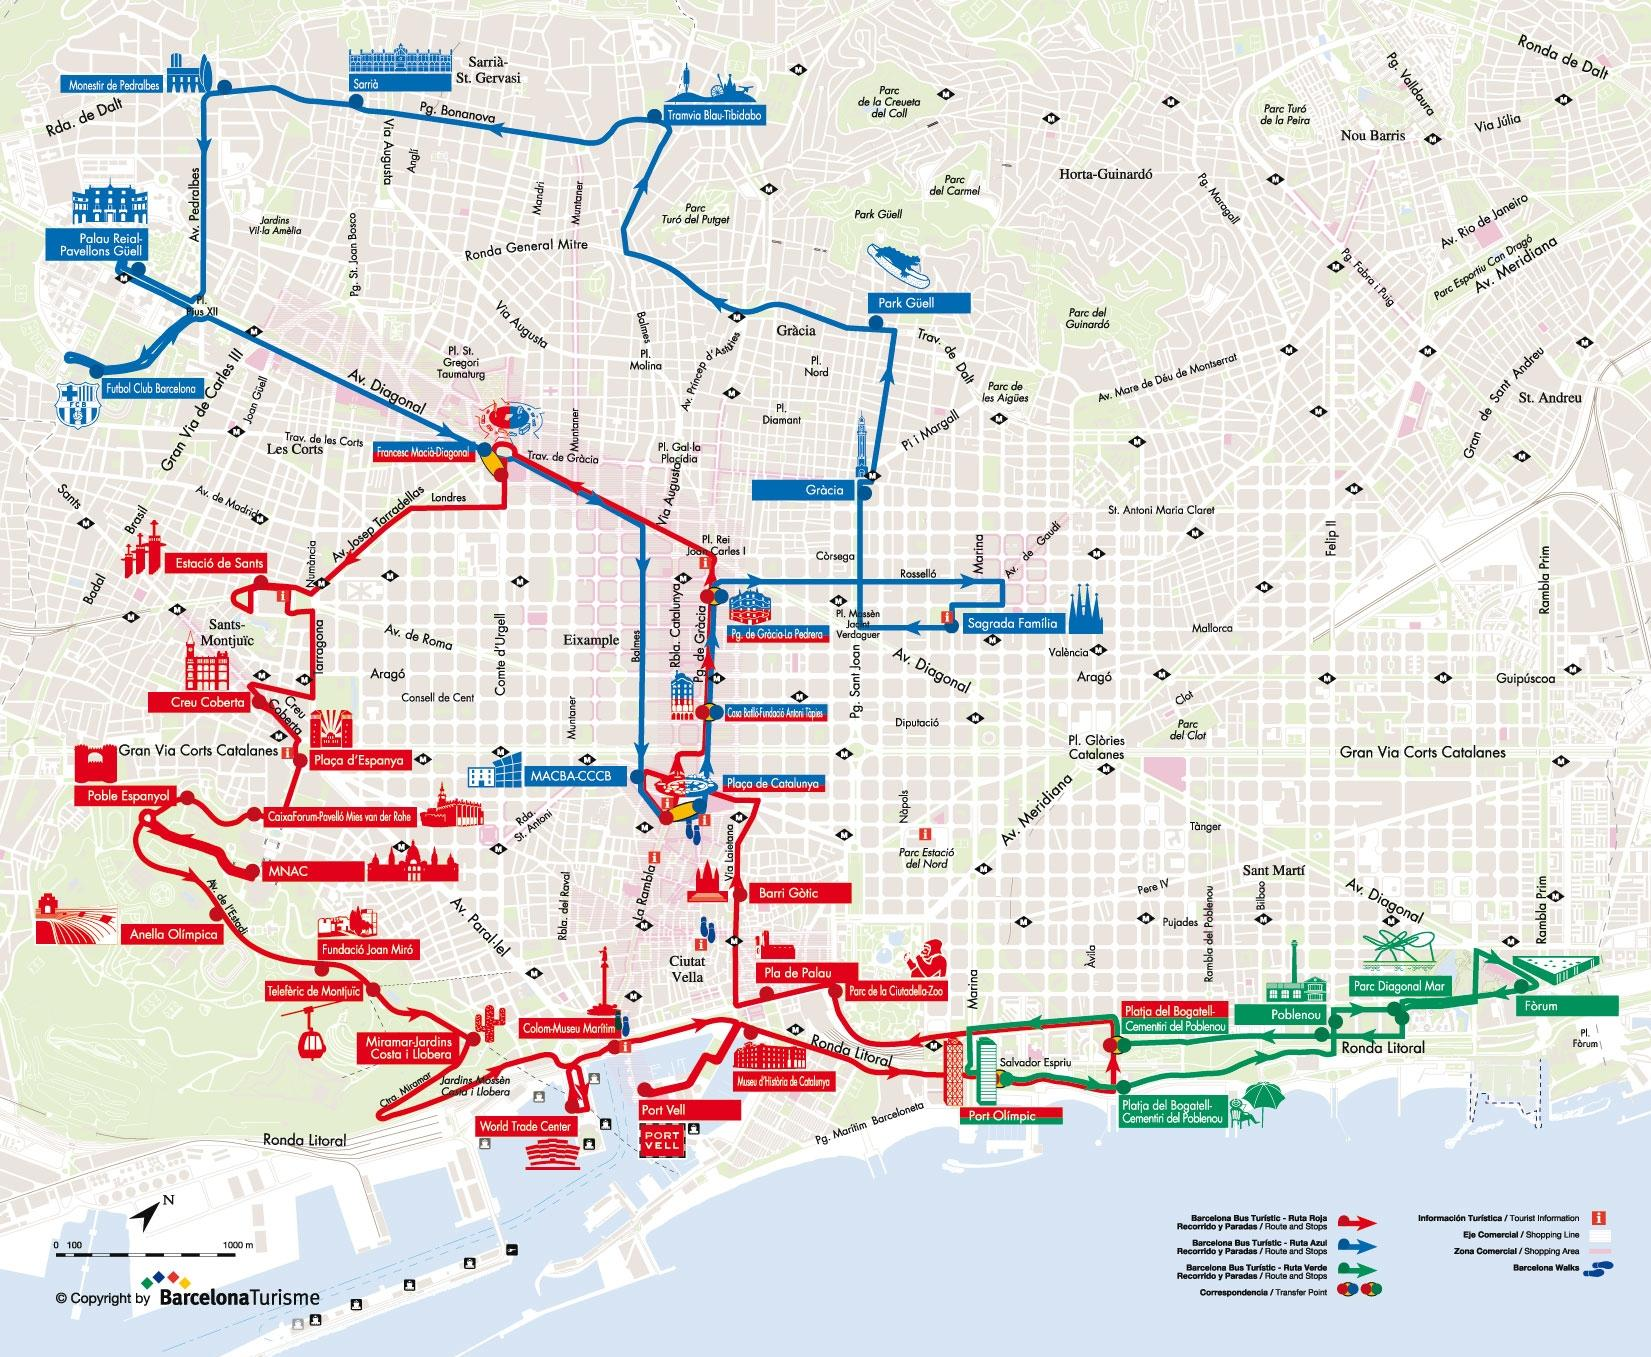 barcelona-hop-on-hop-off-tour-north-to-south-route-in-barcelona-49597